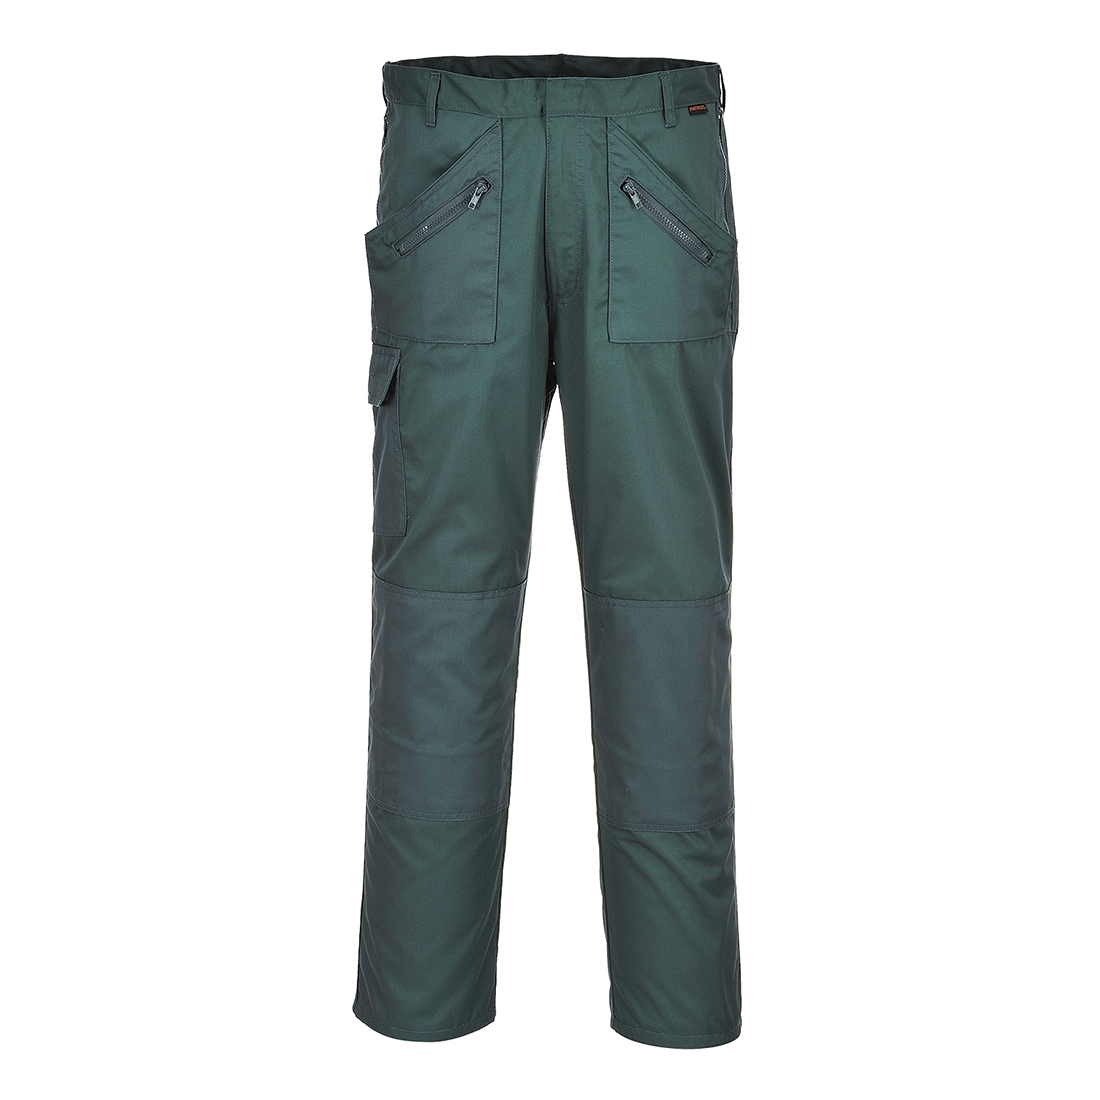 Action Trousers Spruce Green 40R